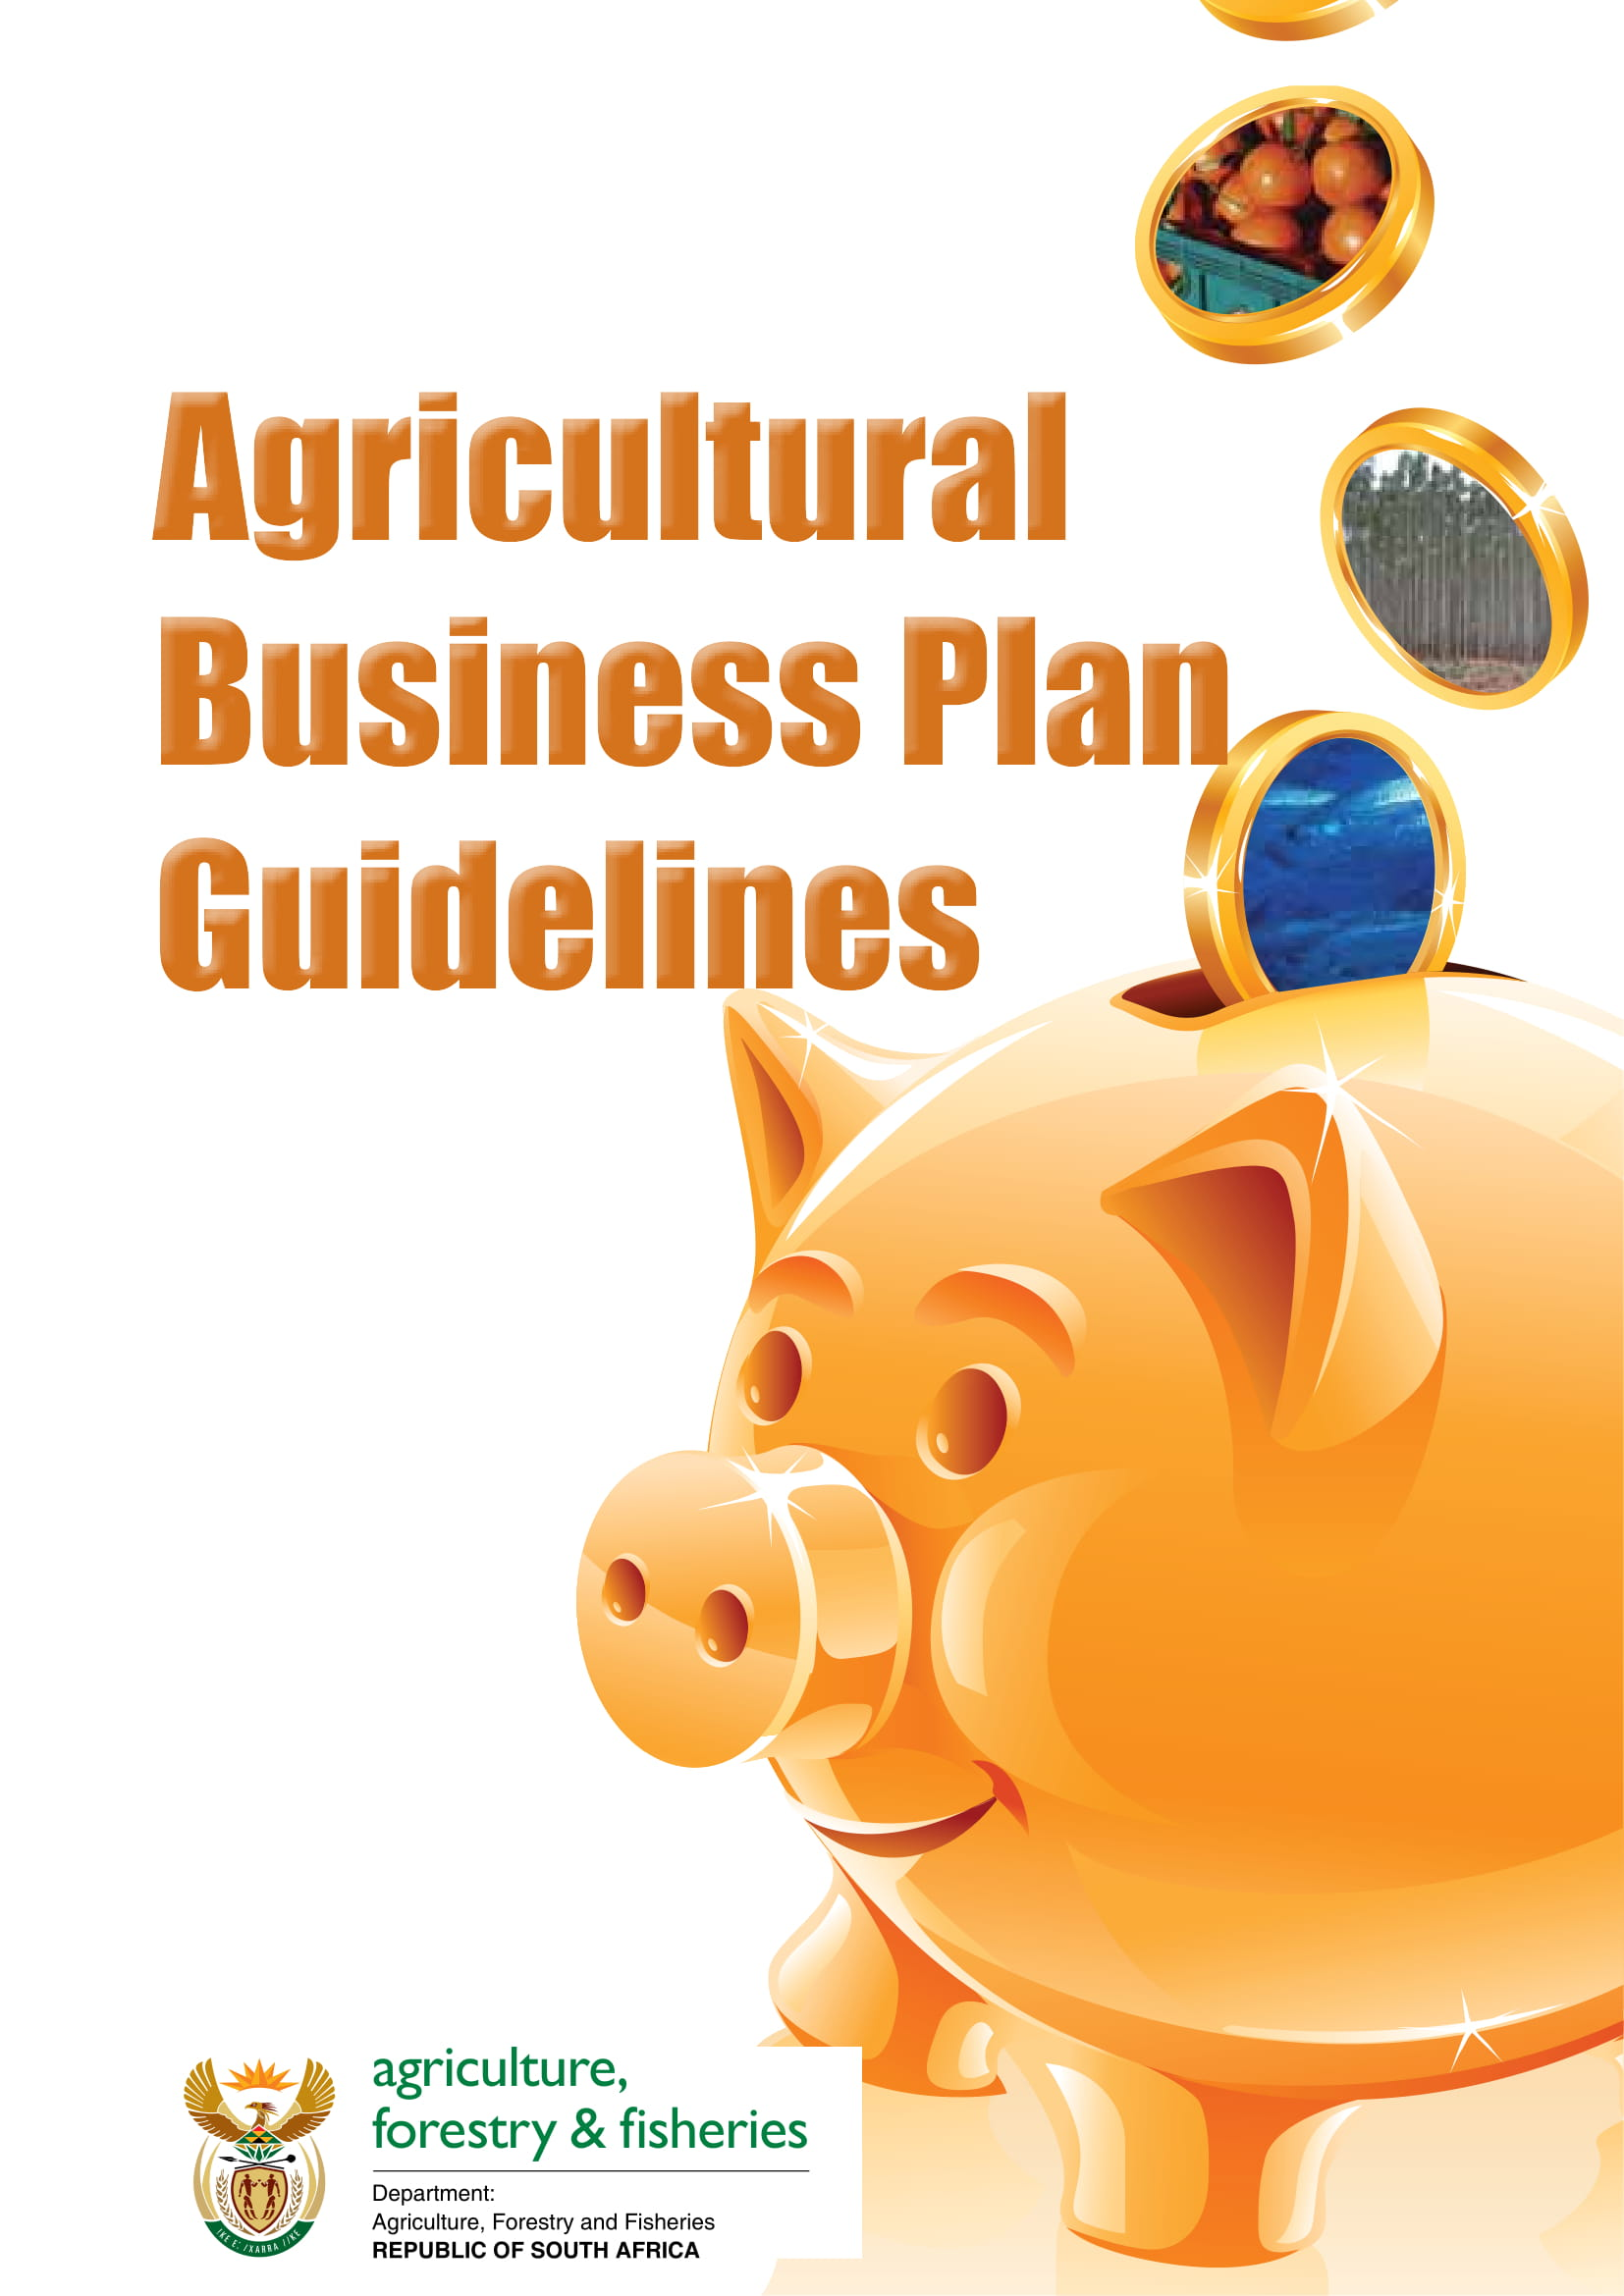 agricultural business plan guidelines example 01